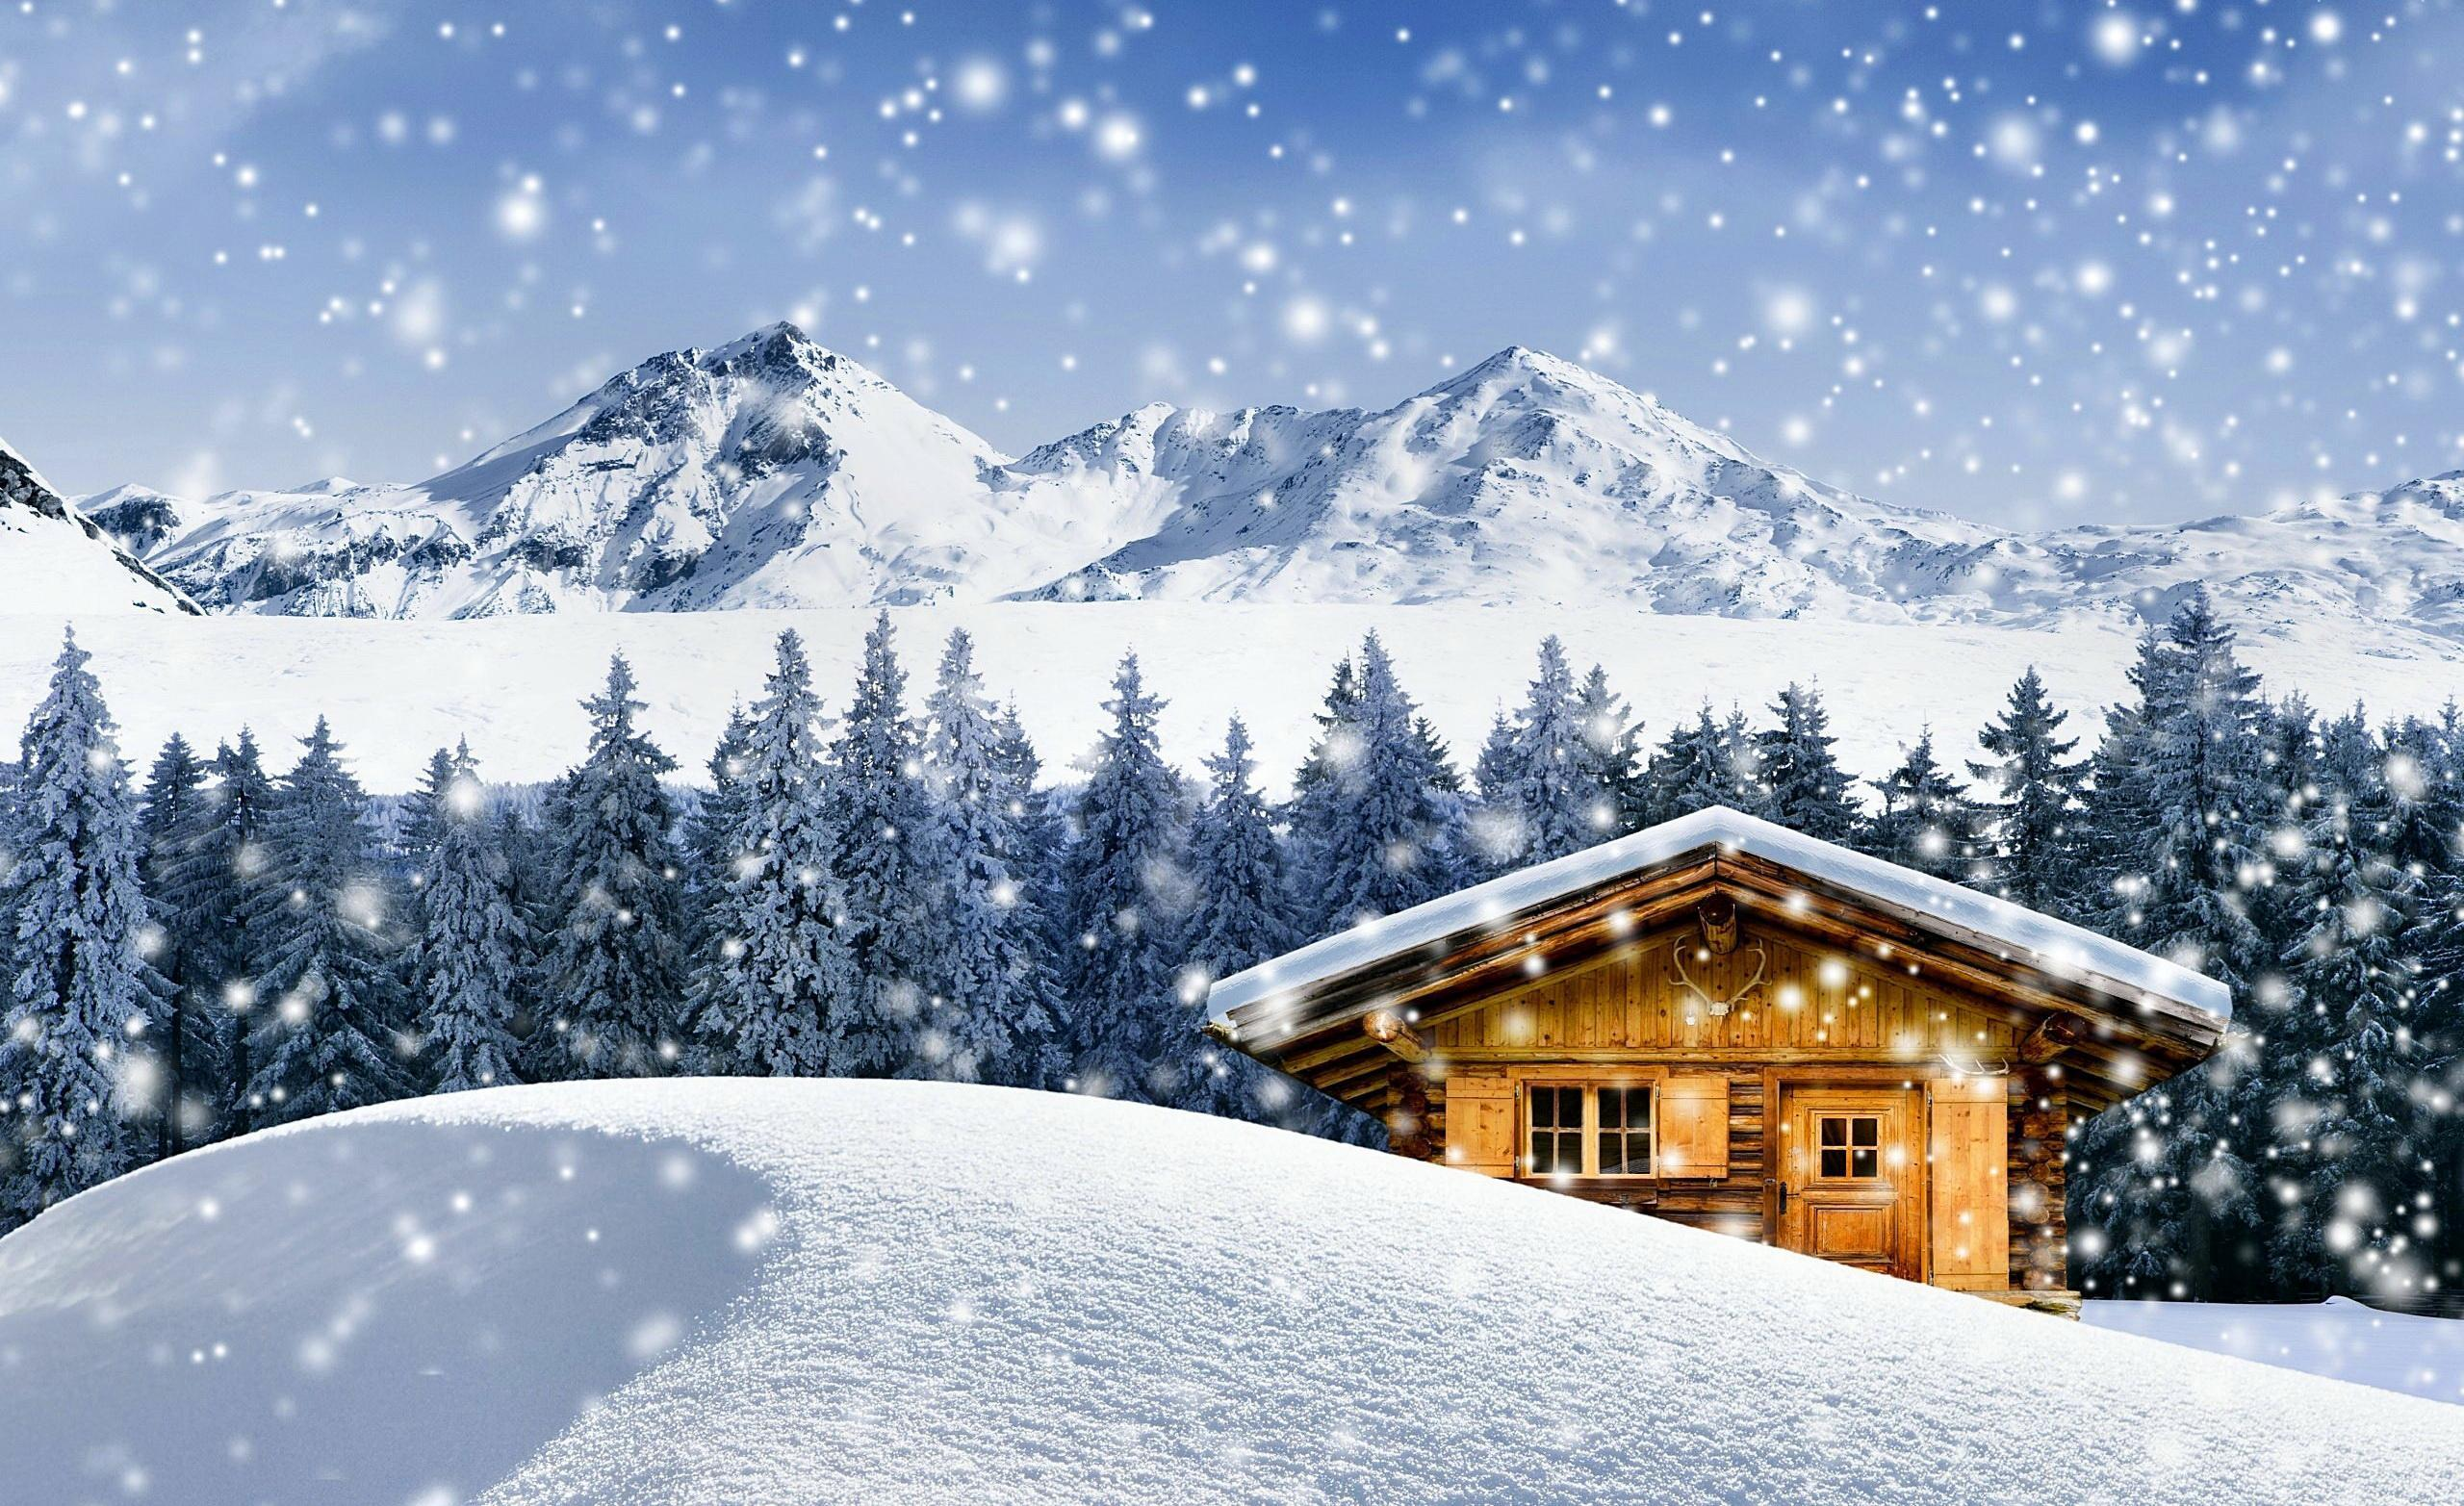 Winter cabin wallpapers wallpaper cave for Cottage in the mountains